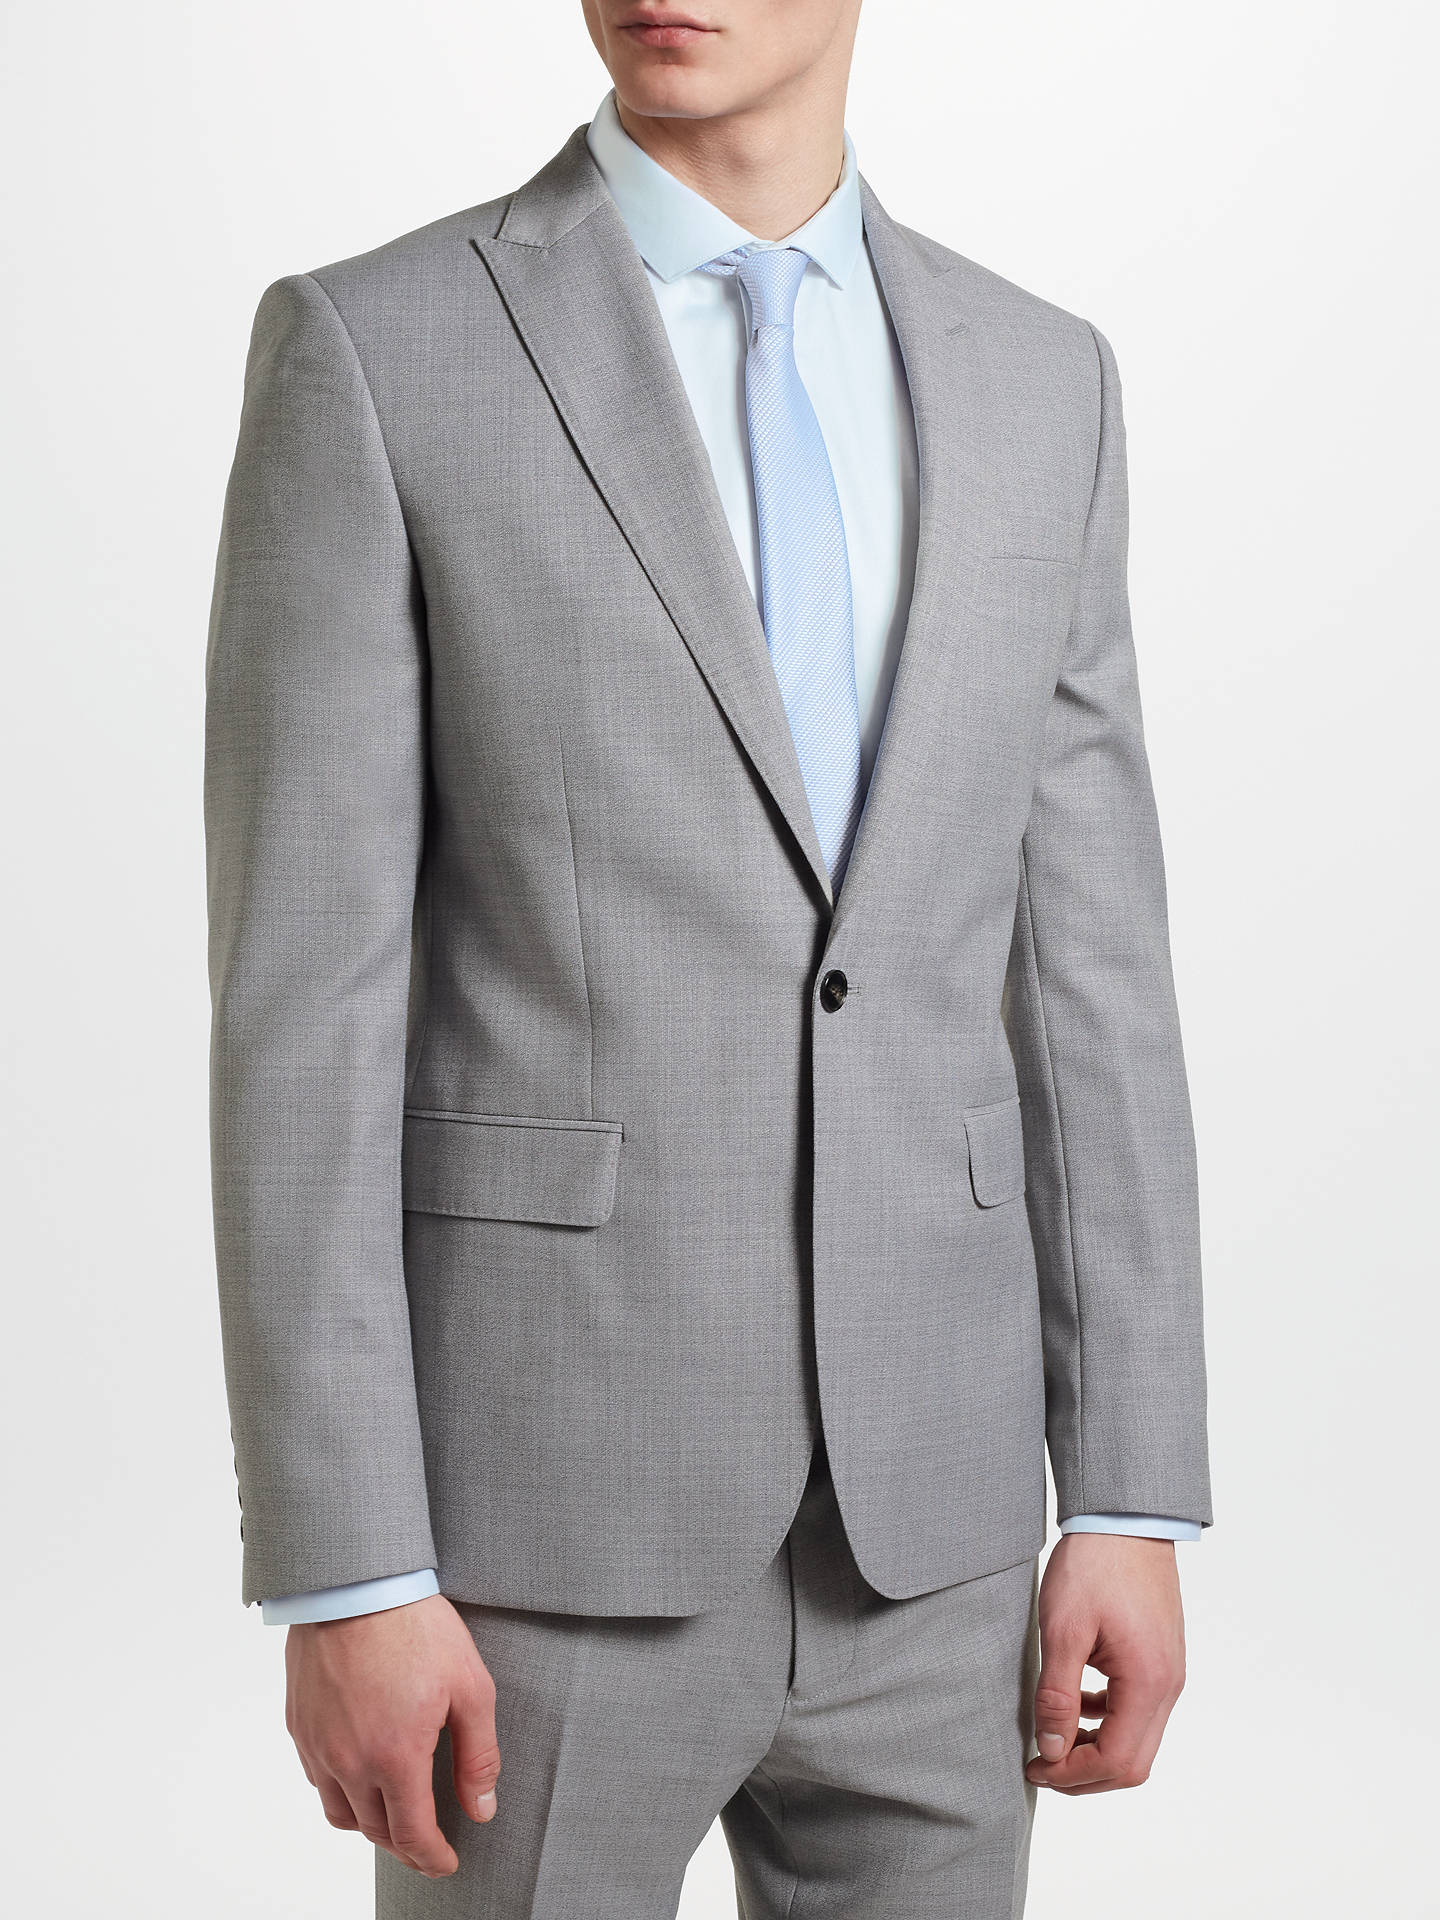 BuyKin Crepe Slim Fit Suit Jacket 4e1d61676529